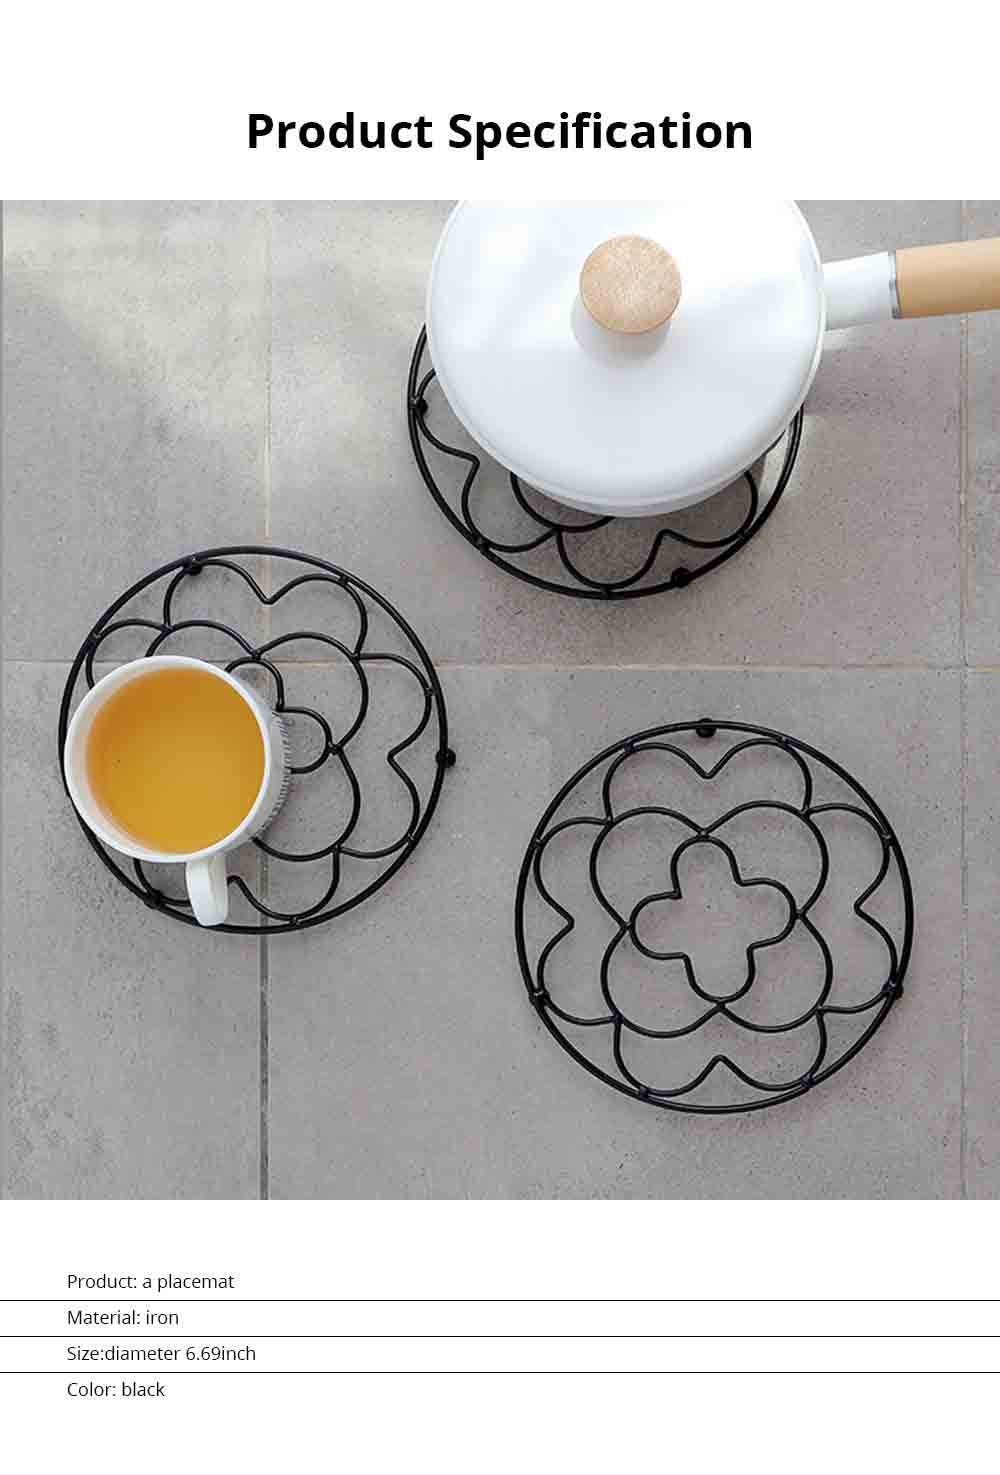 Placemat Creative Anti-hot Iron Round Table Pot Mat Kitchen Accessory Simple Casserole Pad Bowl Mat Coaster 6